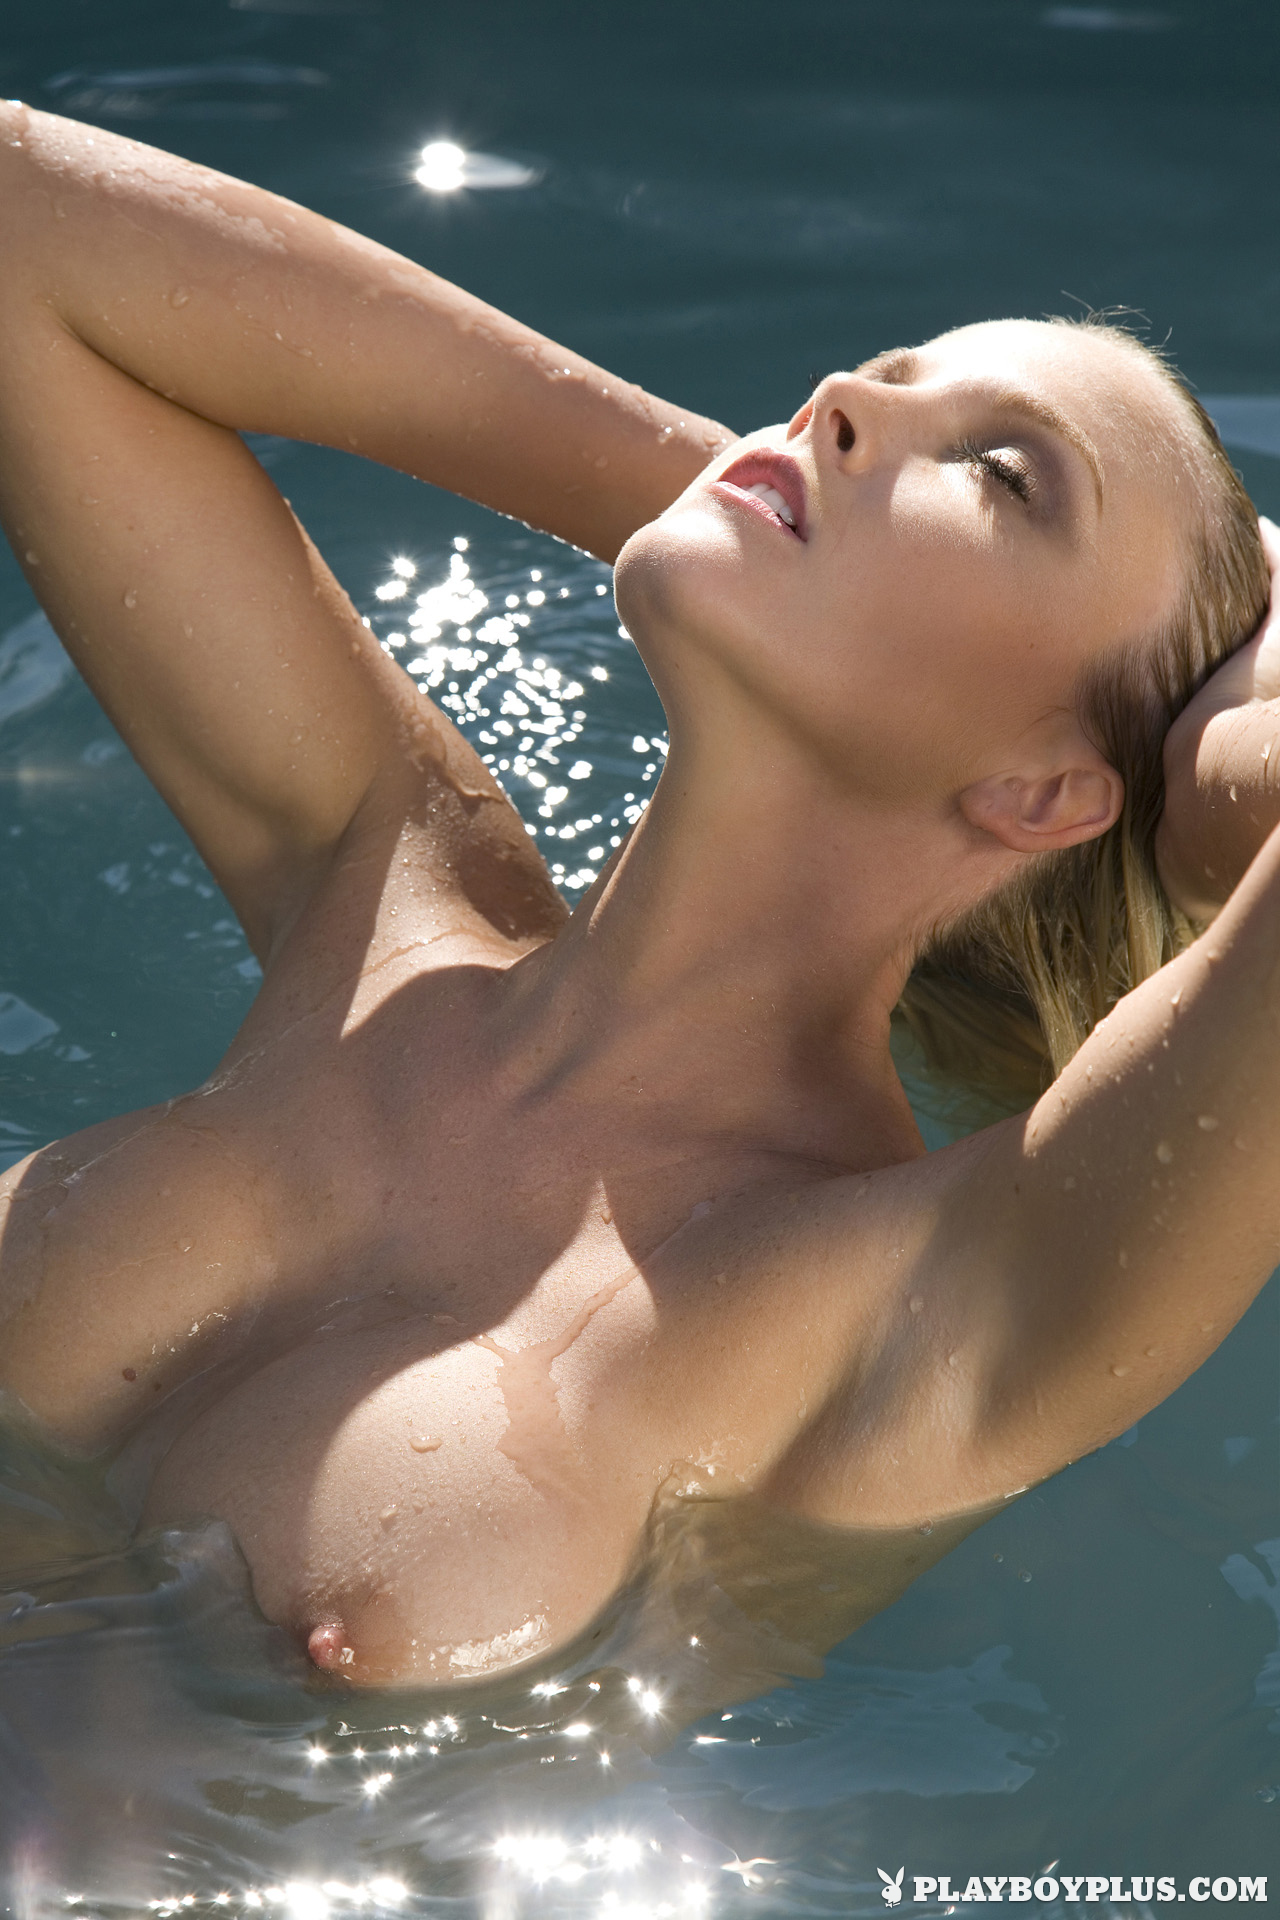 Jade Fairbrother in Playboy South Africa - Centerfolds Blog